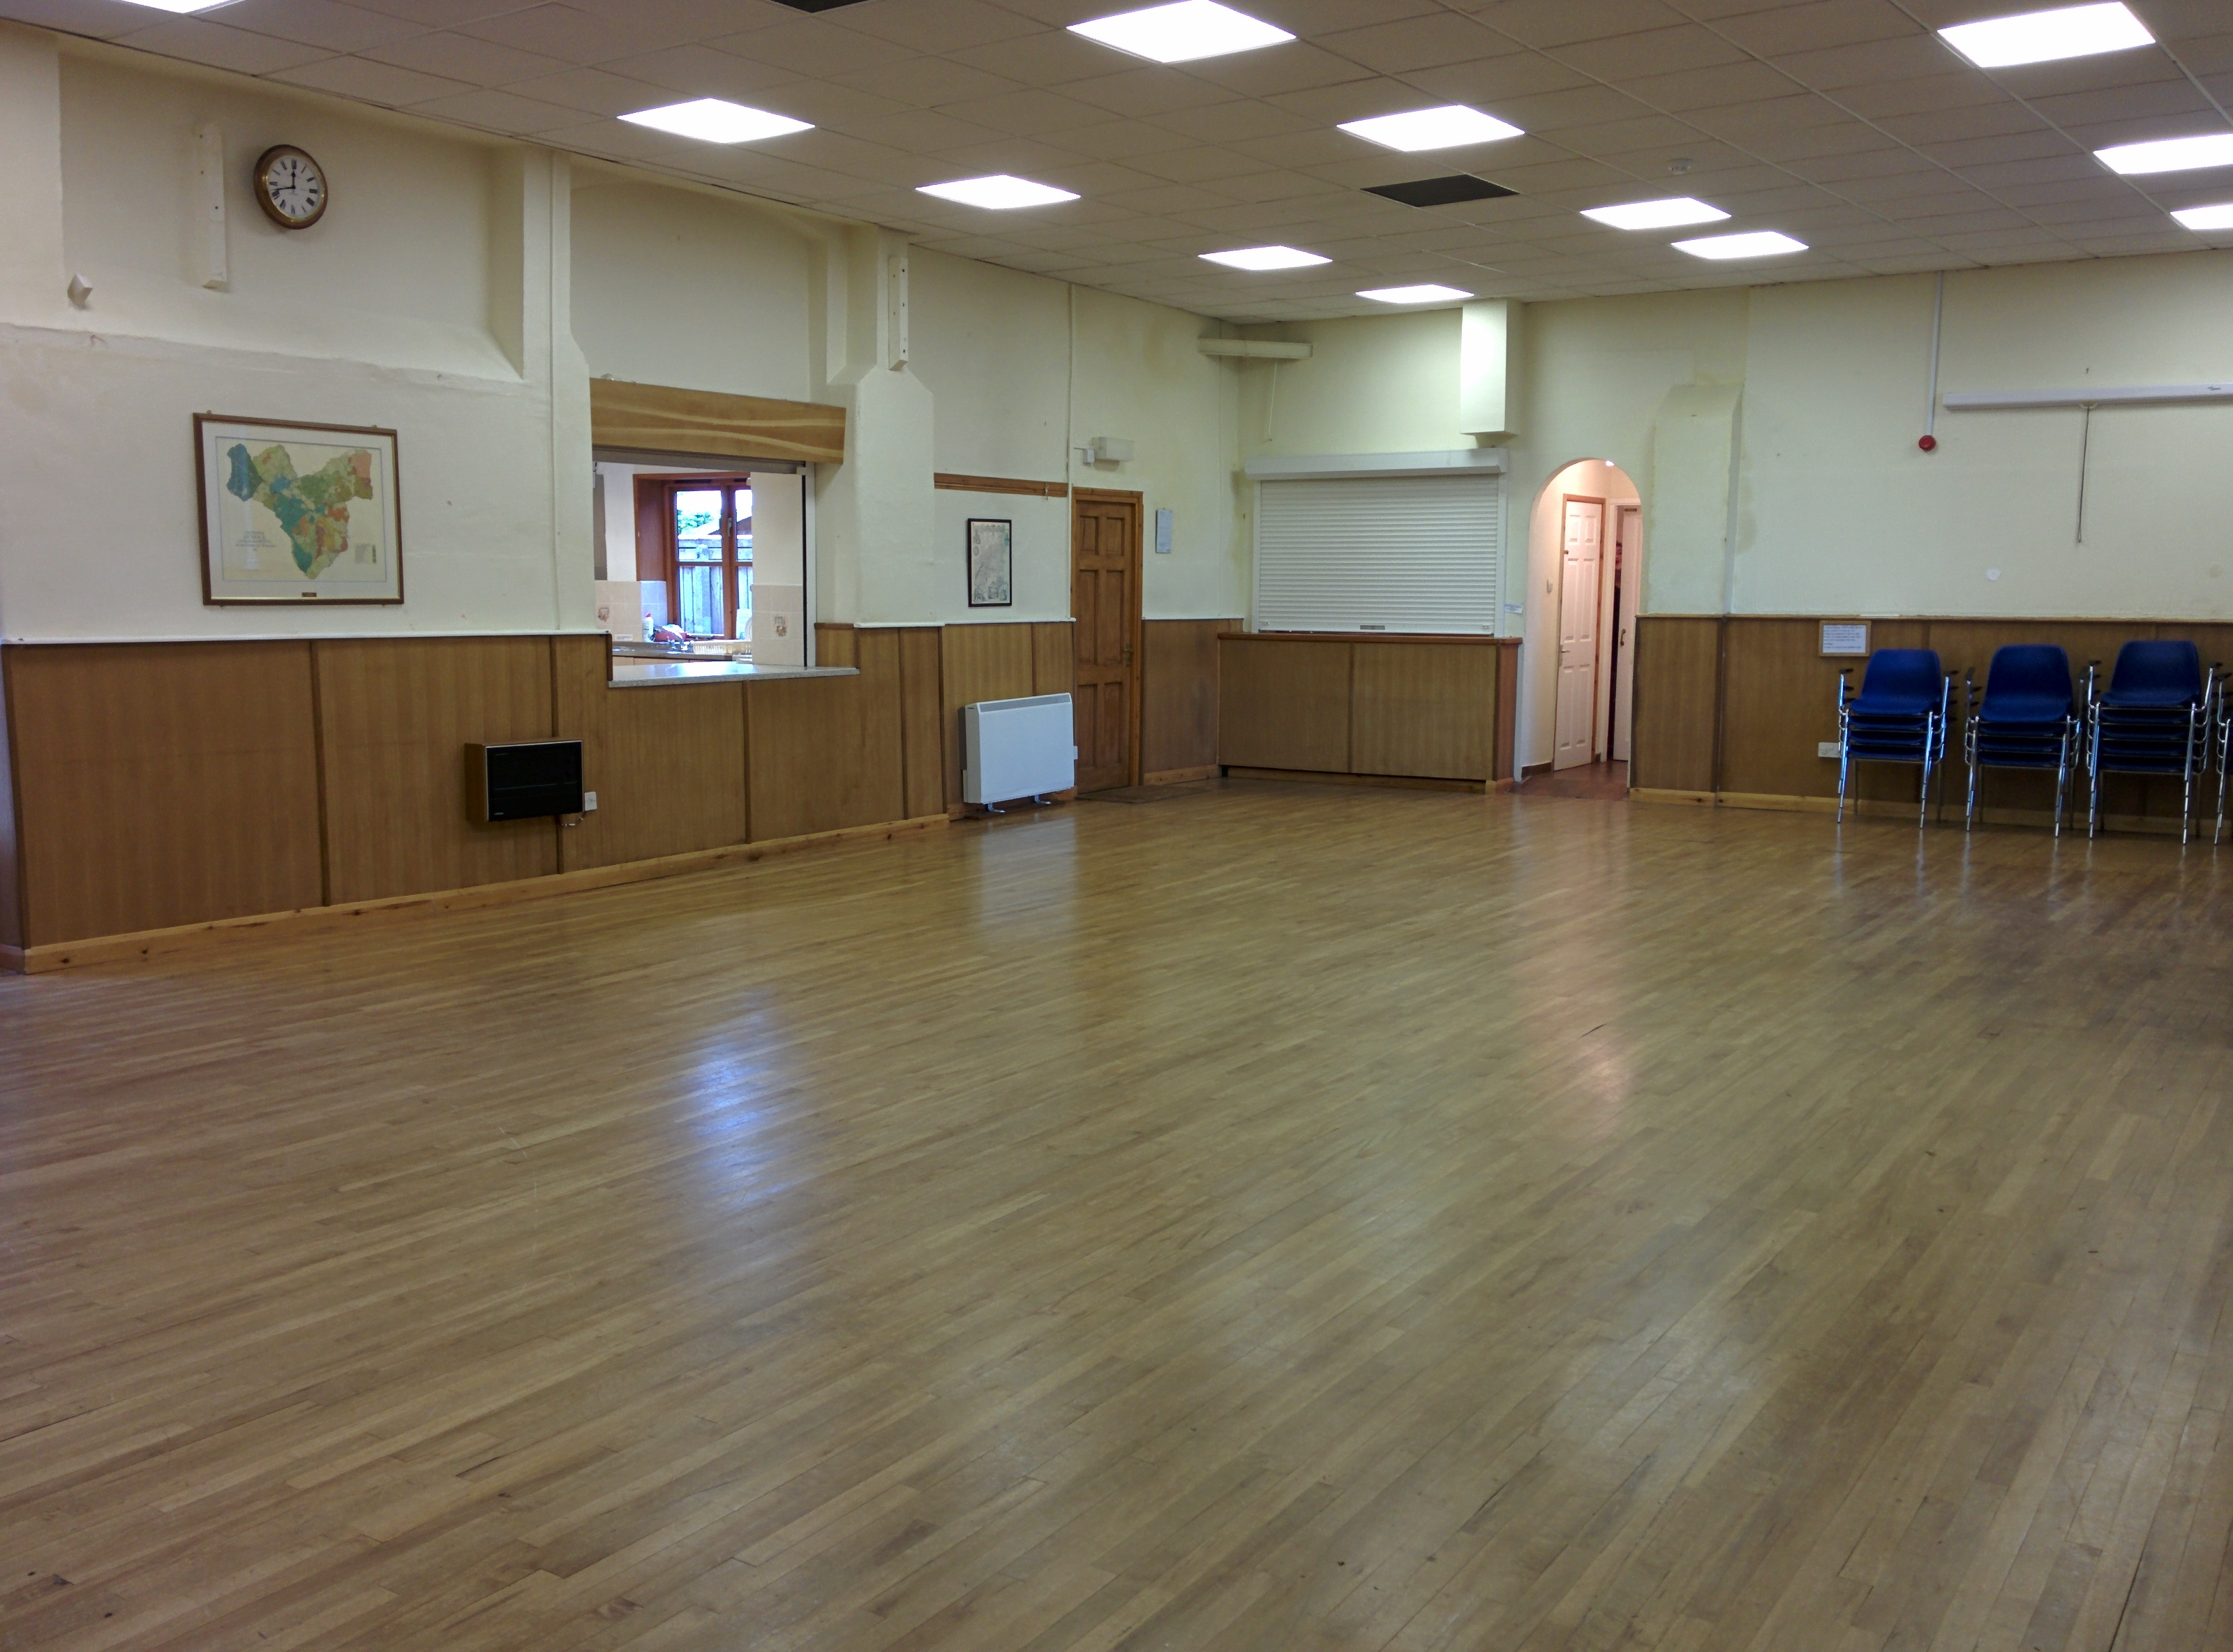 The main hall at Dymock Parish Hall.